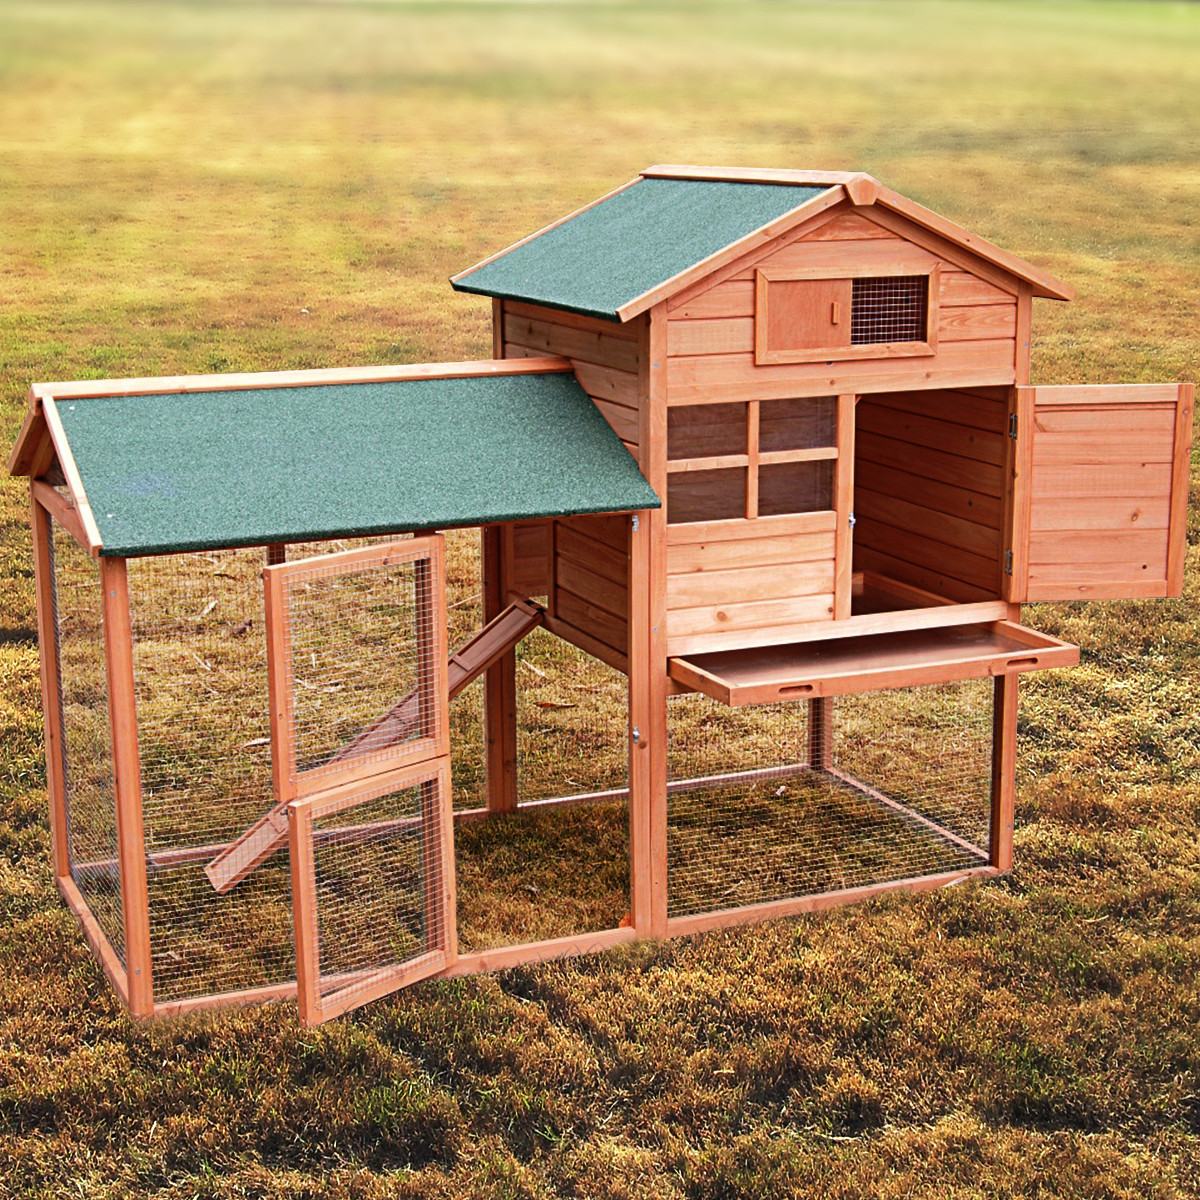 hutch roost large chicken hutches coops starter home coop product